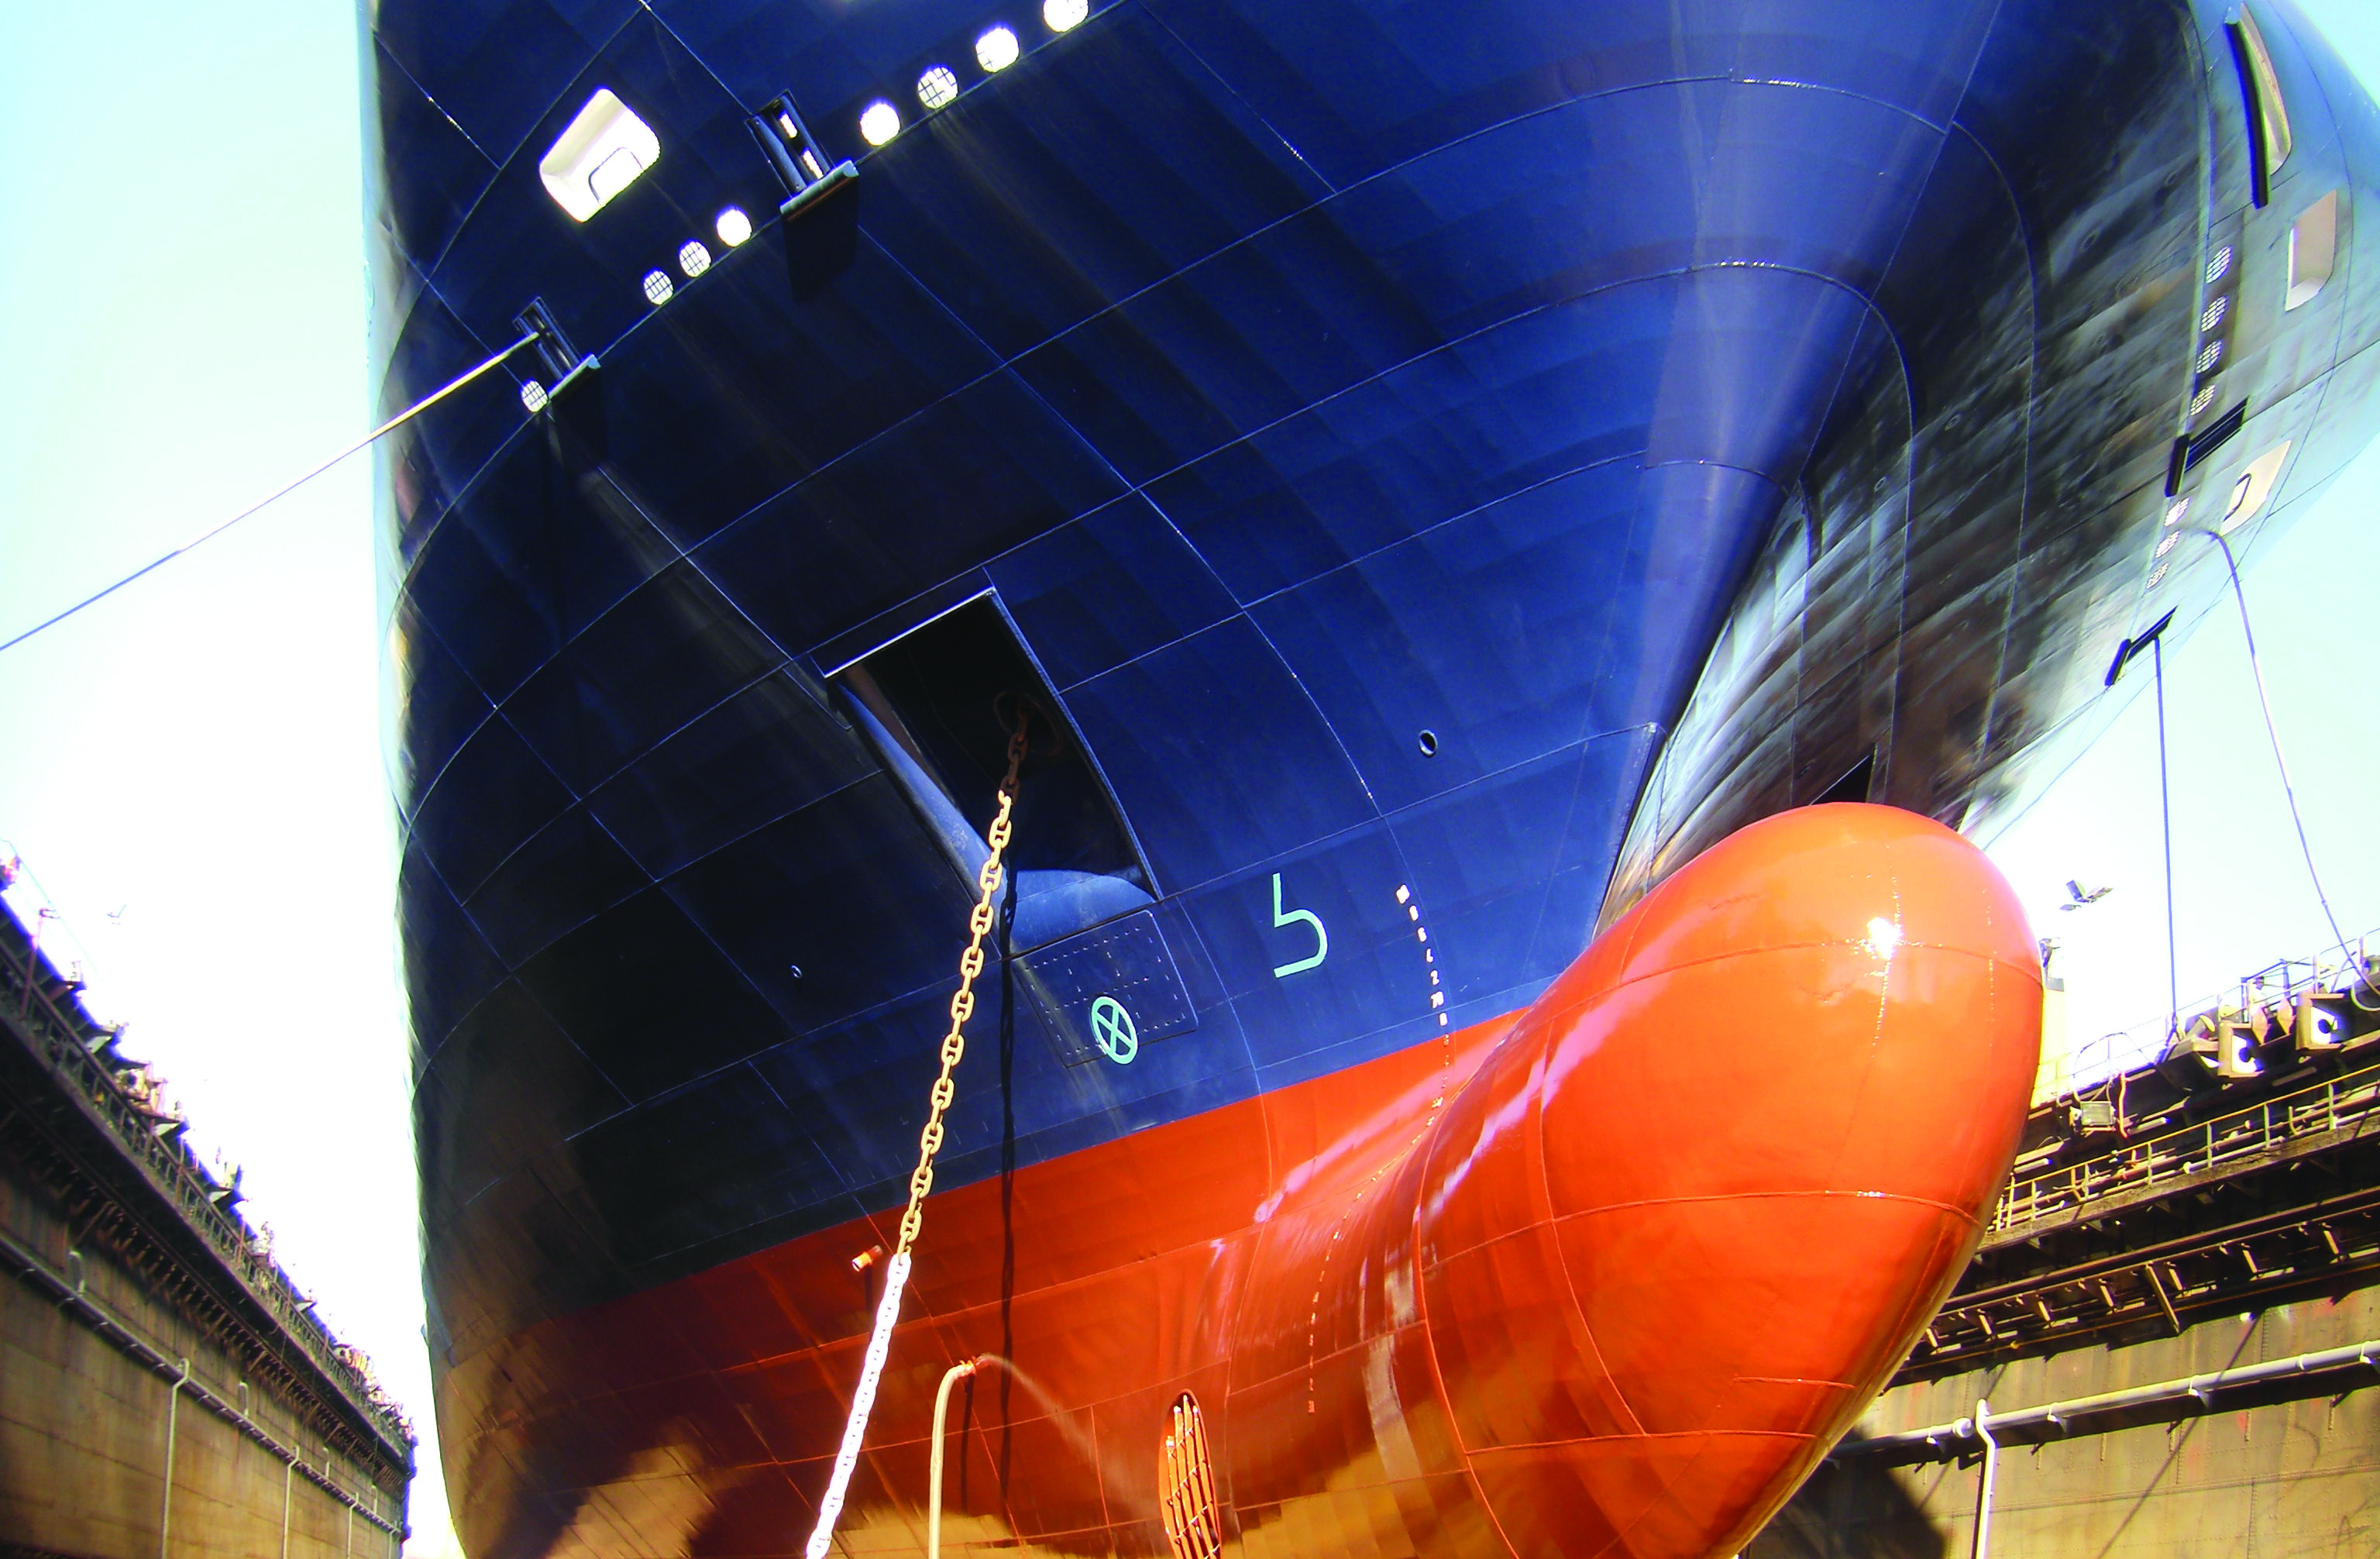 The study used the hull performance analysis methodology developed by DNV GL to analyze the performance of various major vessel types, including LNG carriers, bulk carriers, crude oil tankers and cruise vessels.